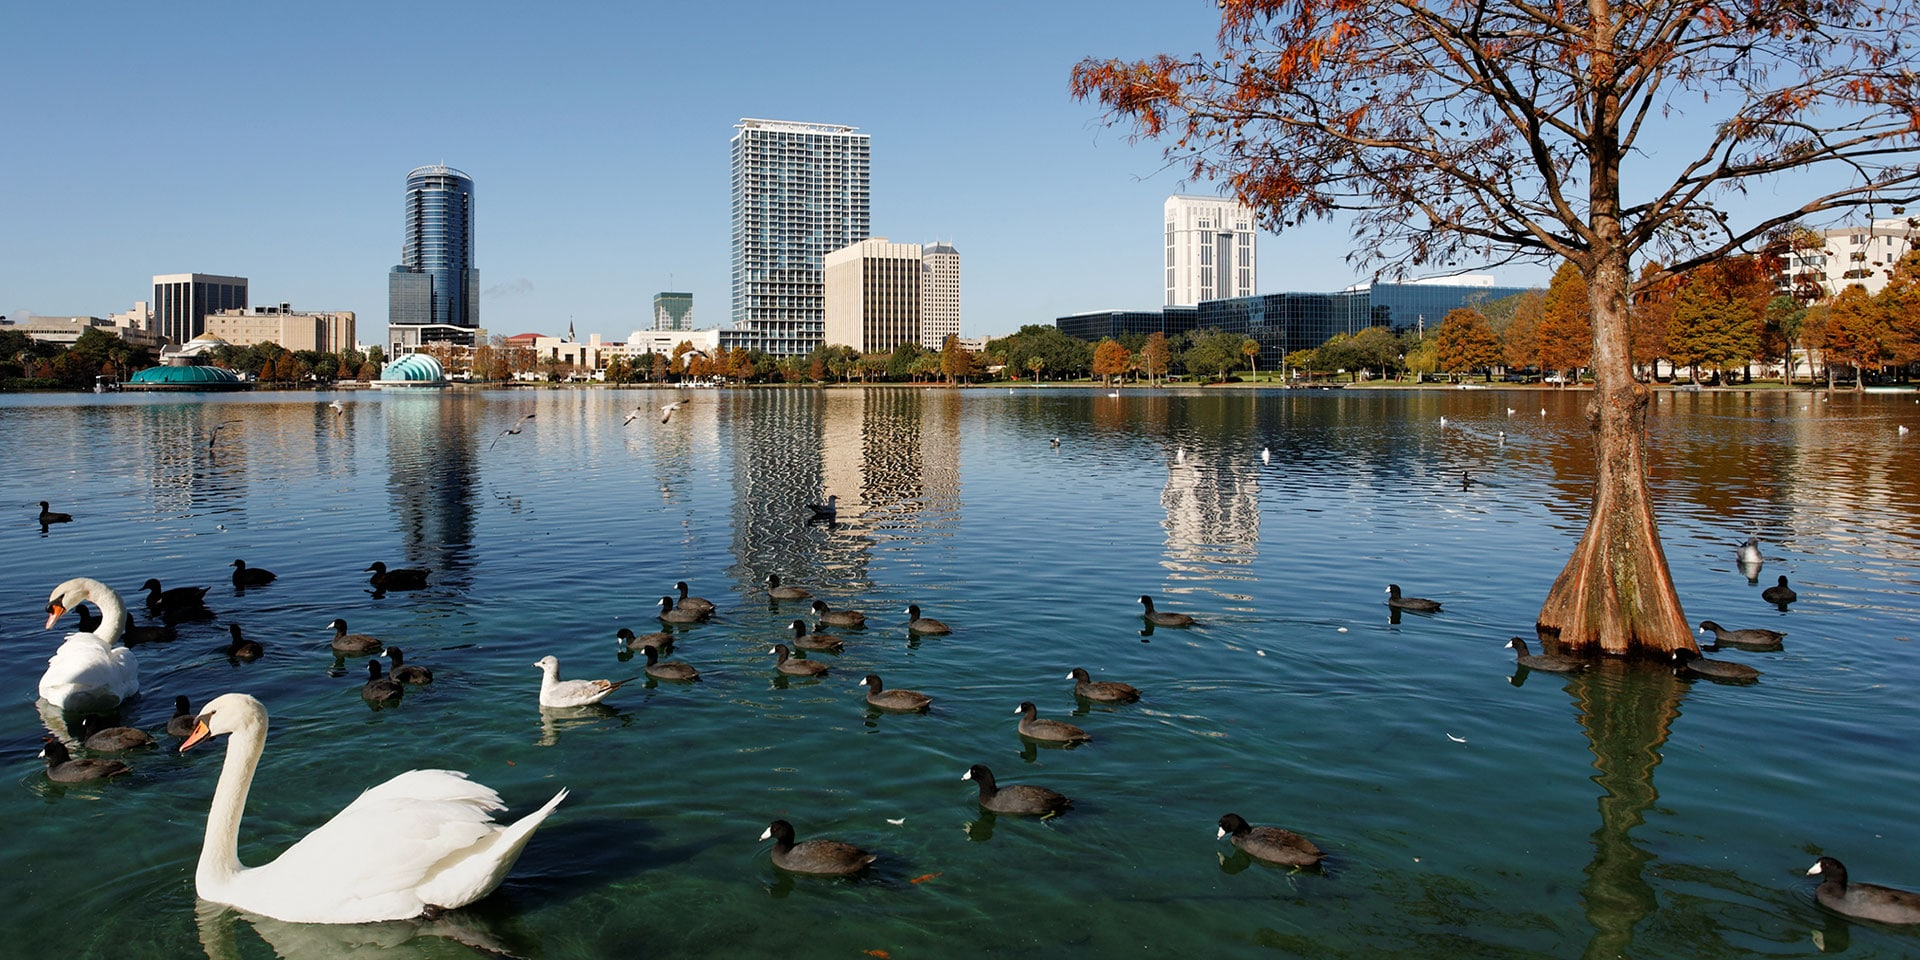 Lake Eola in Orlando.